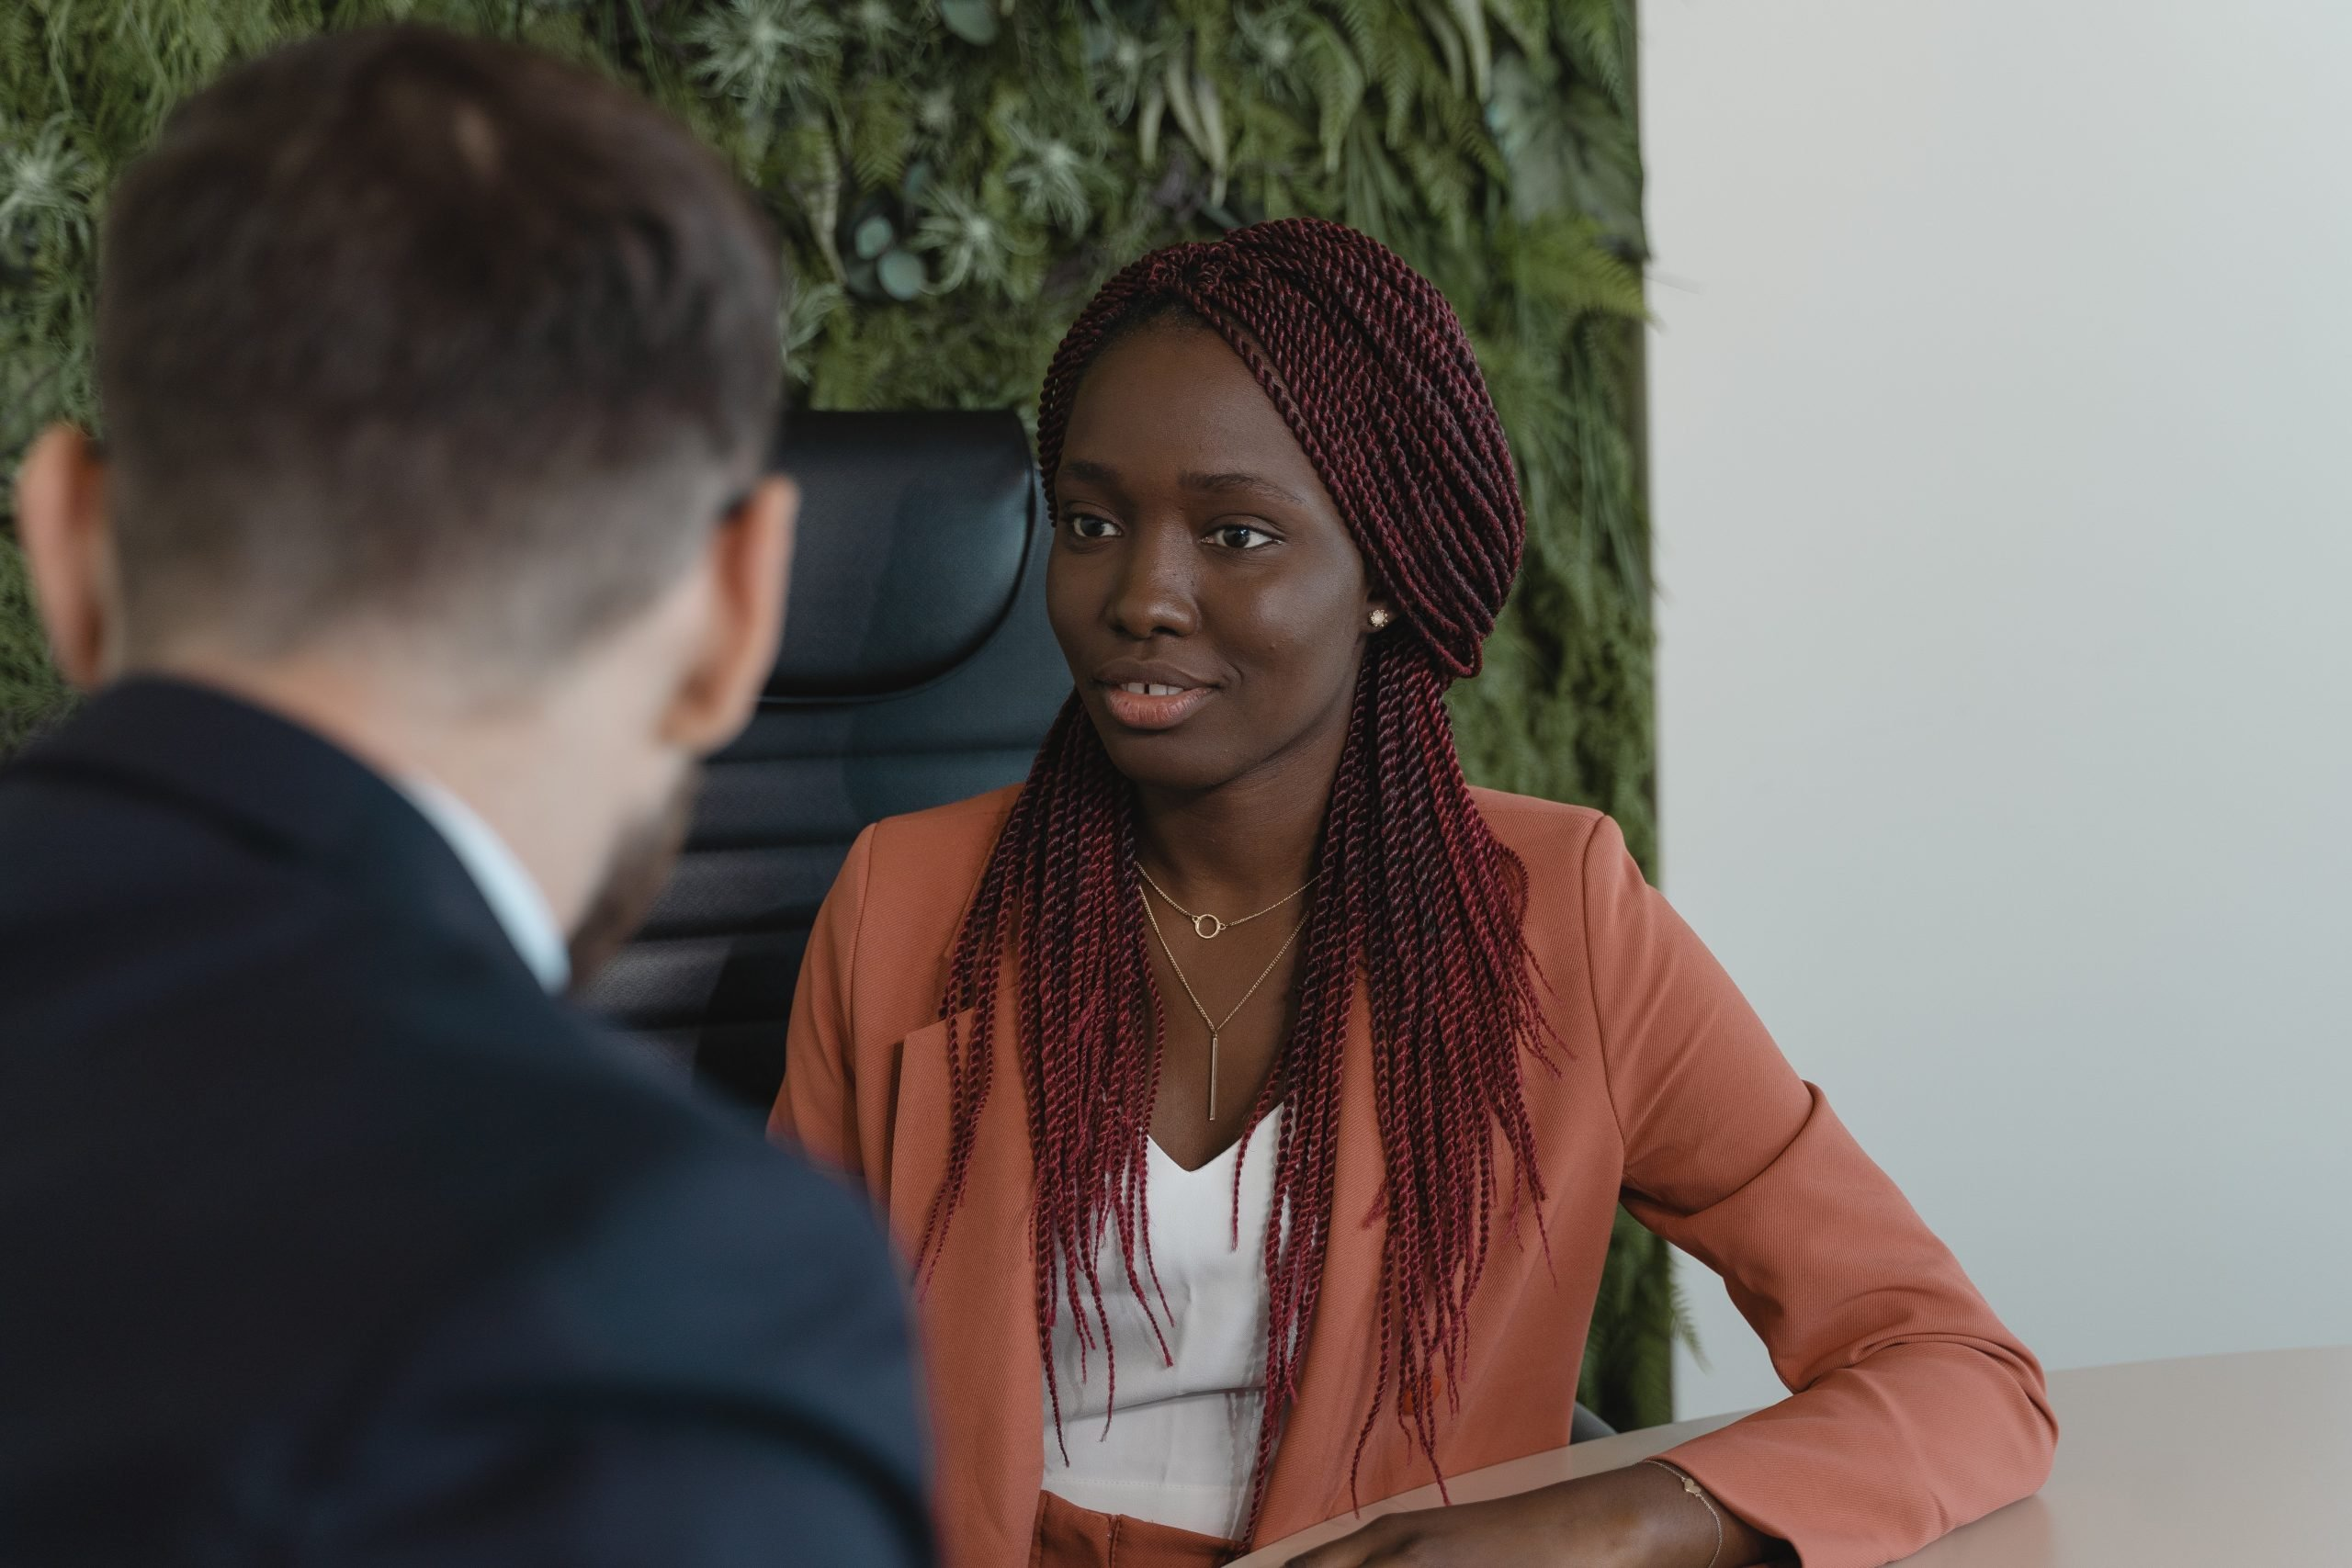 woman in job interview, seated